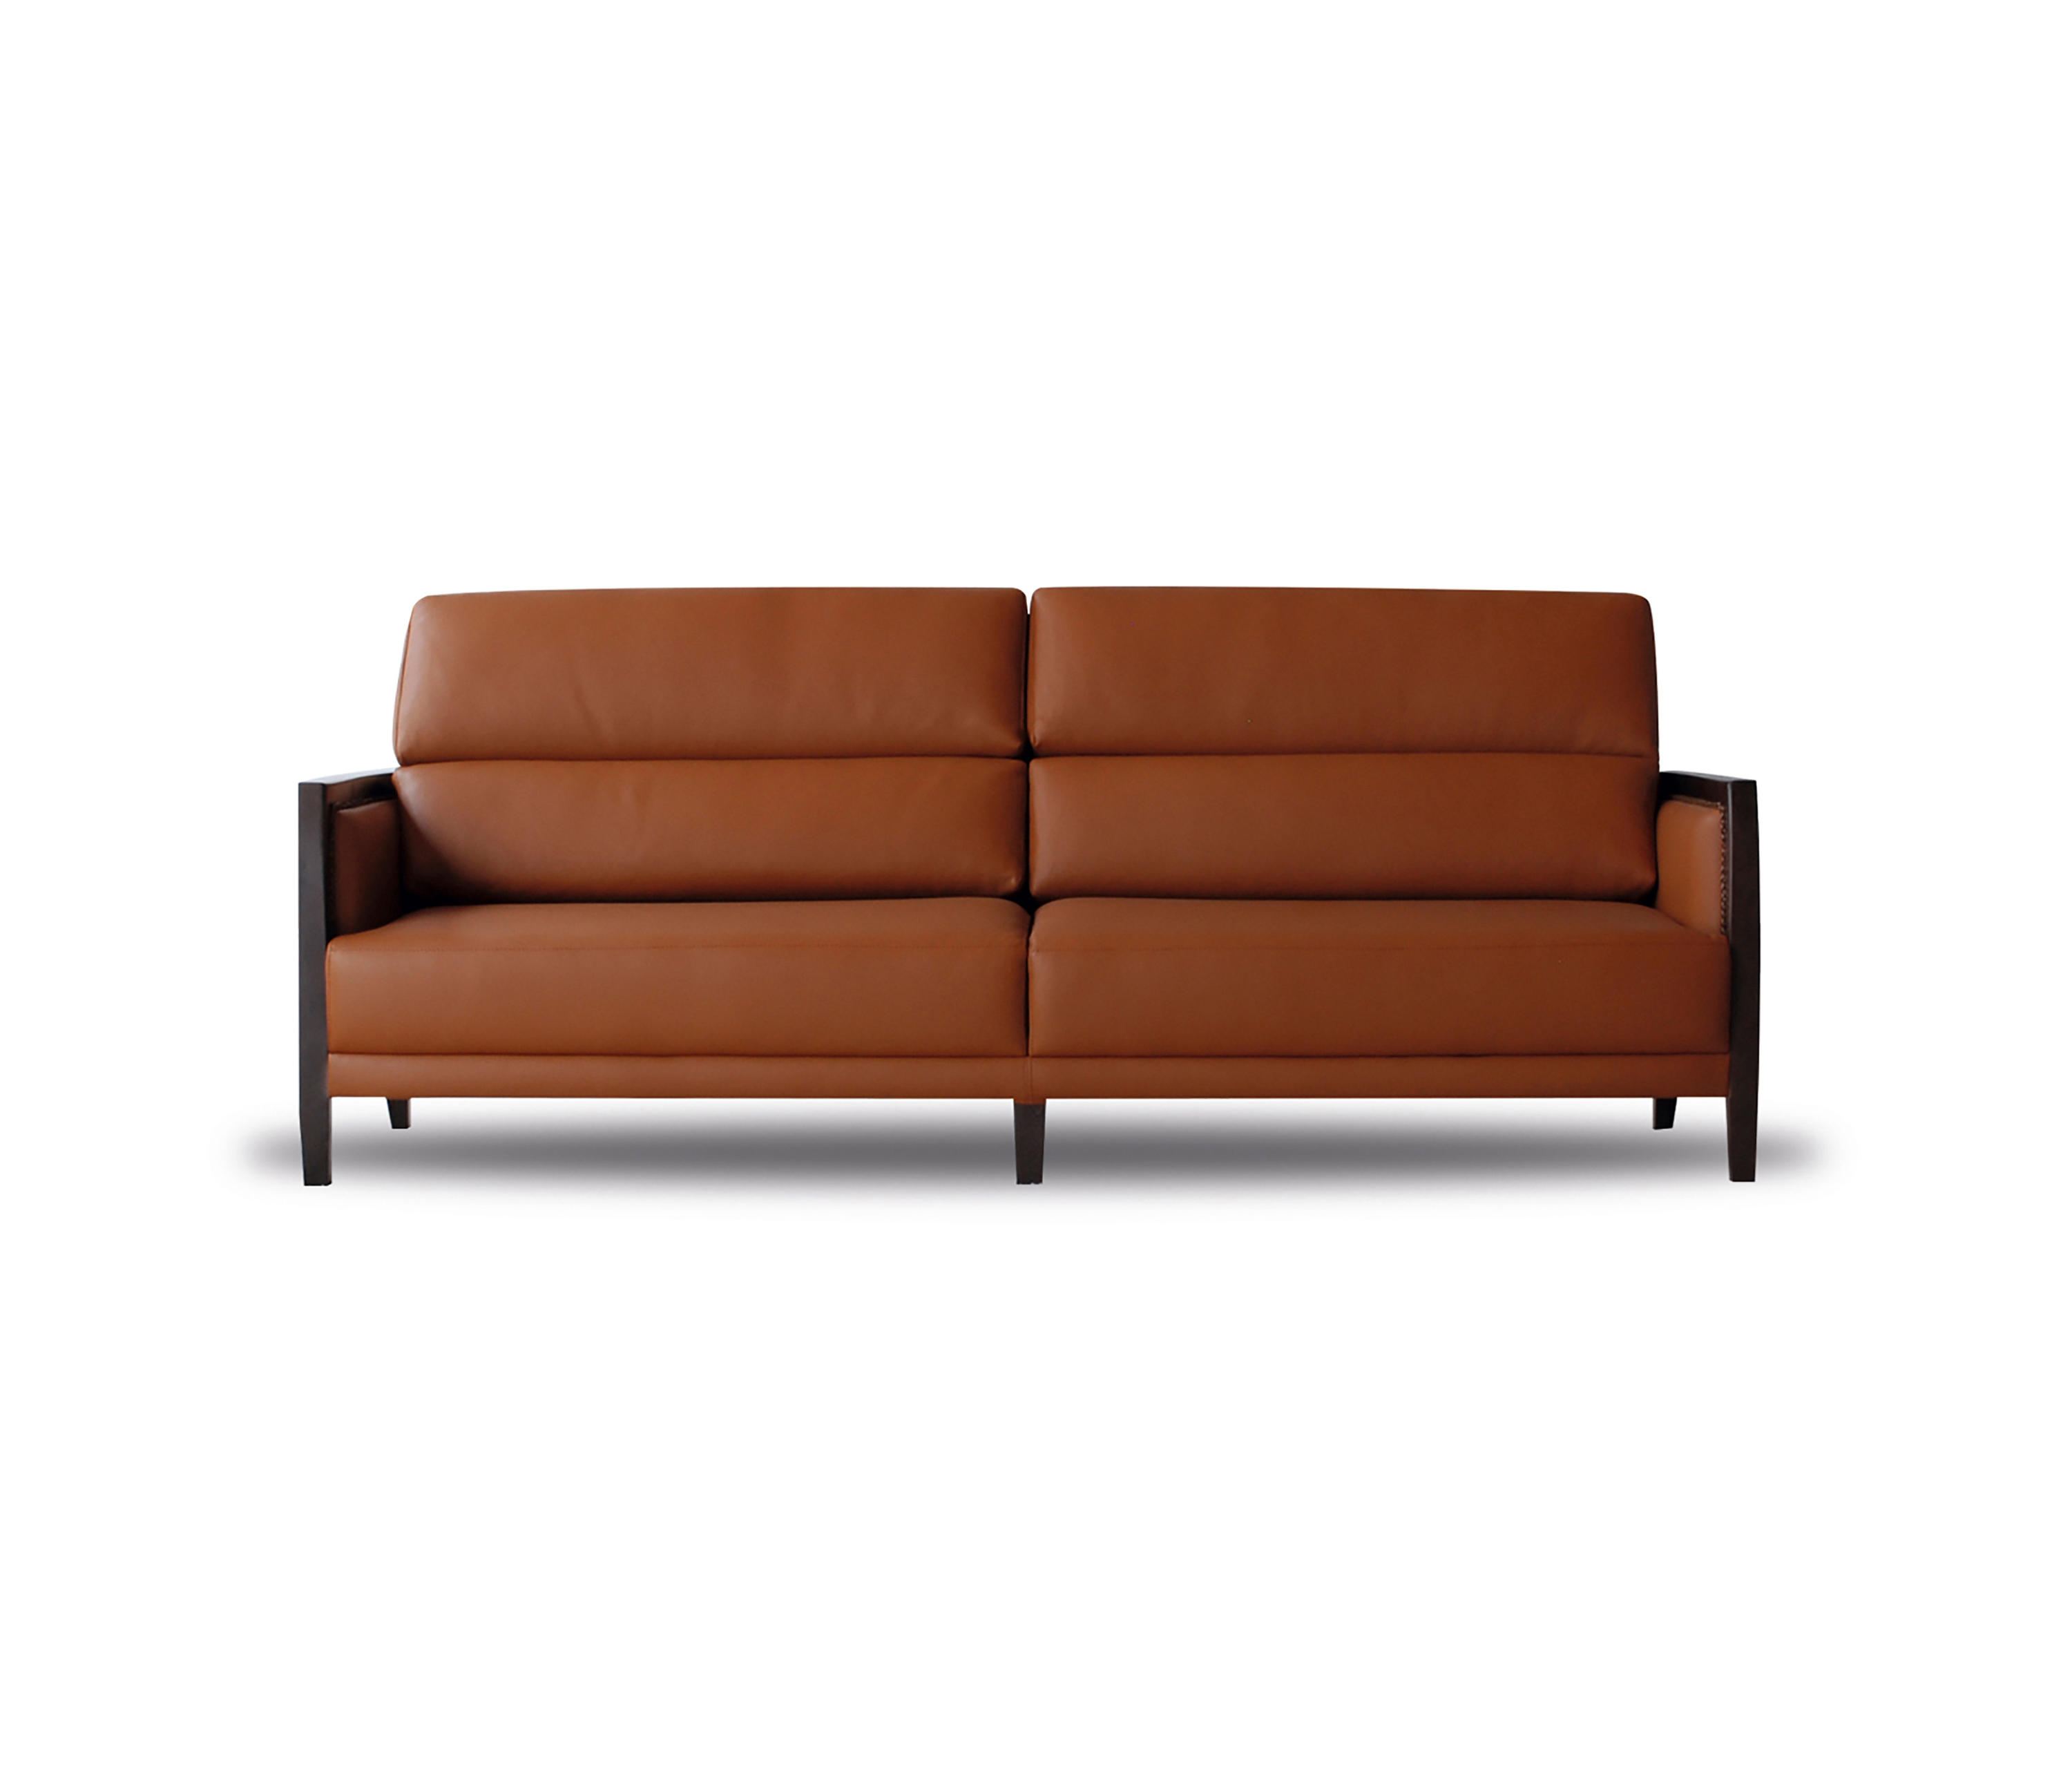 1729 SOFA Sofas from Tecni Nova